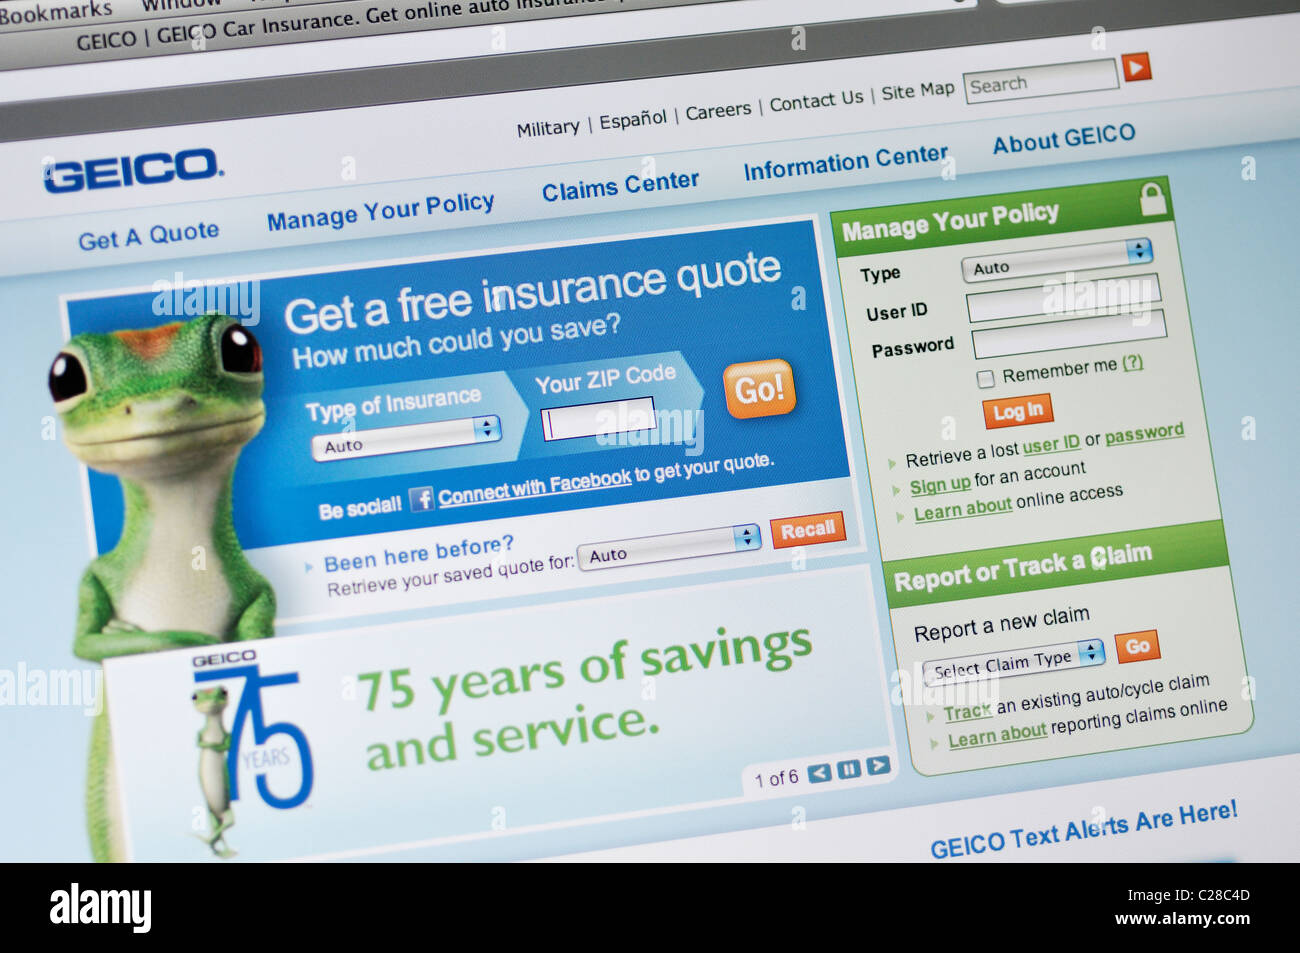 Geico Online Quote Geico Car Insurance Website Stock Photo Royalty Free Image